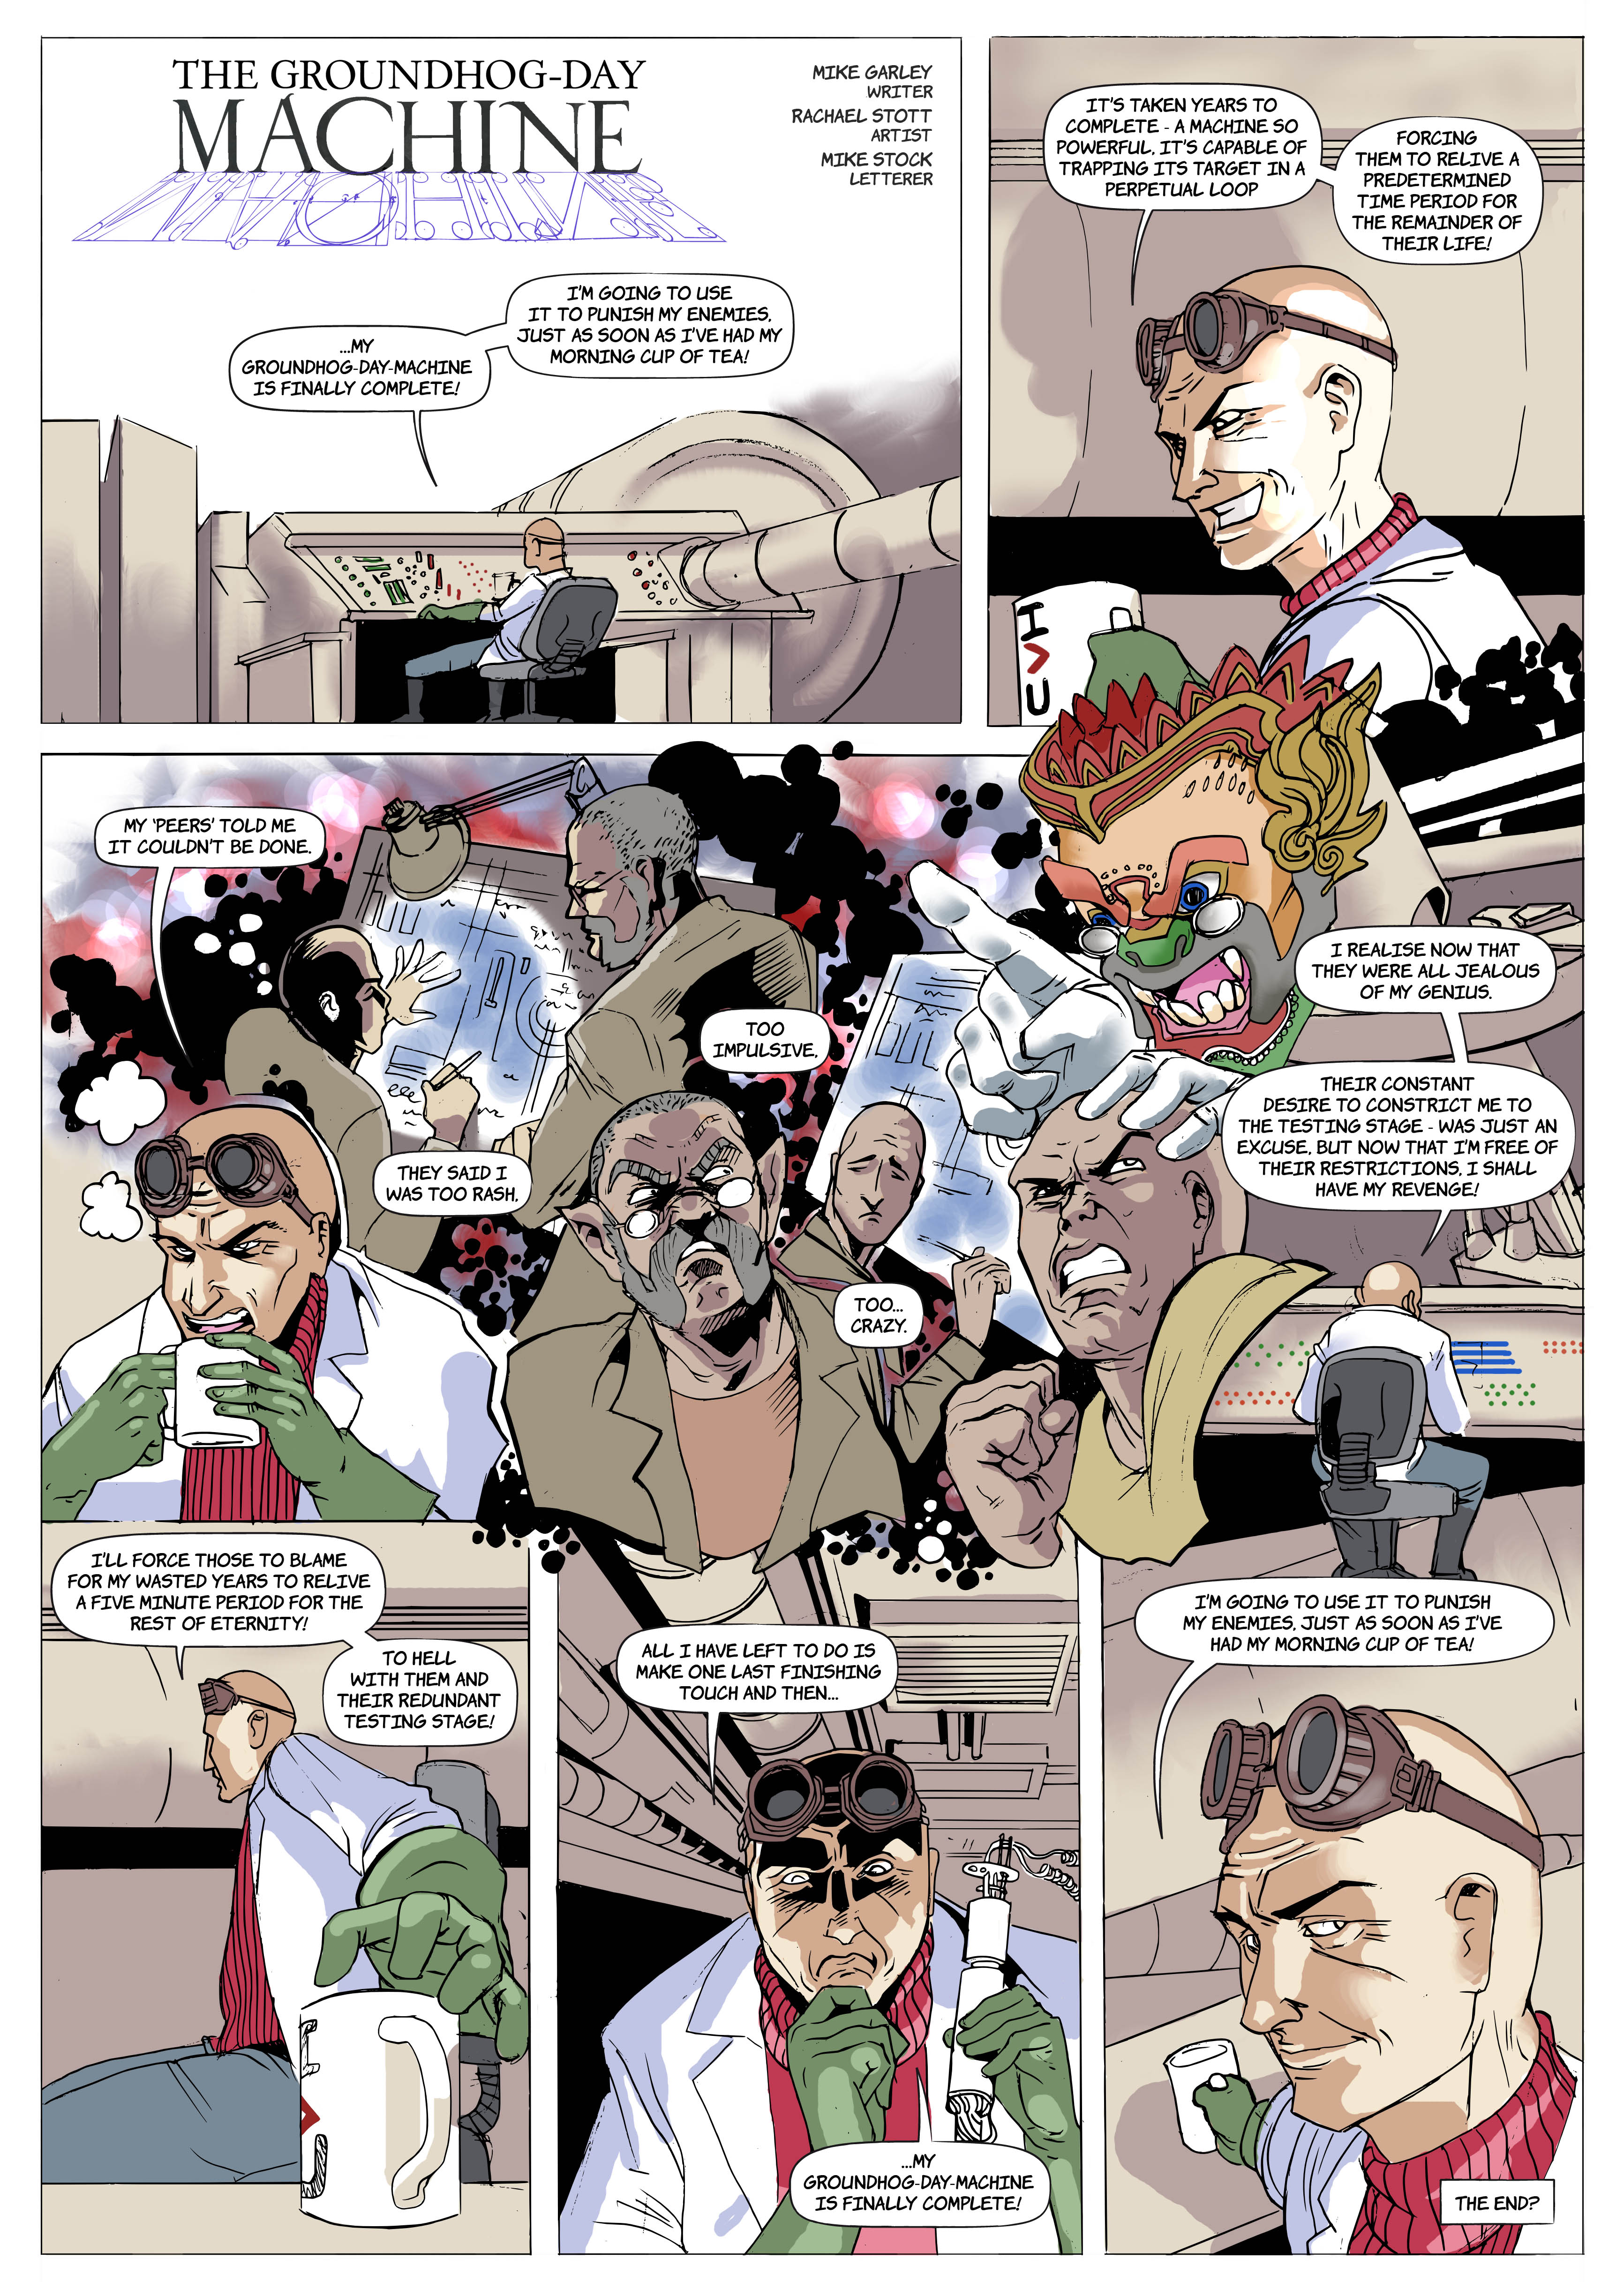 The Groundhog-Day Machine. Written by Mike Garley, art by Rachael Stott, and lettered by Mike Stock.